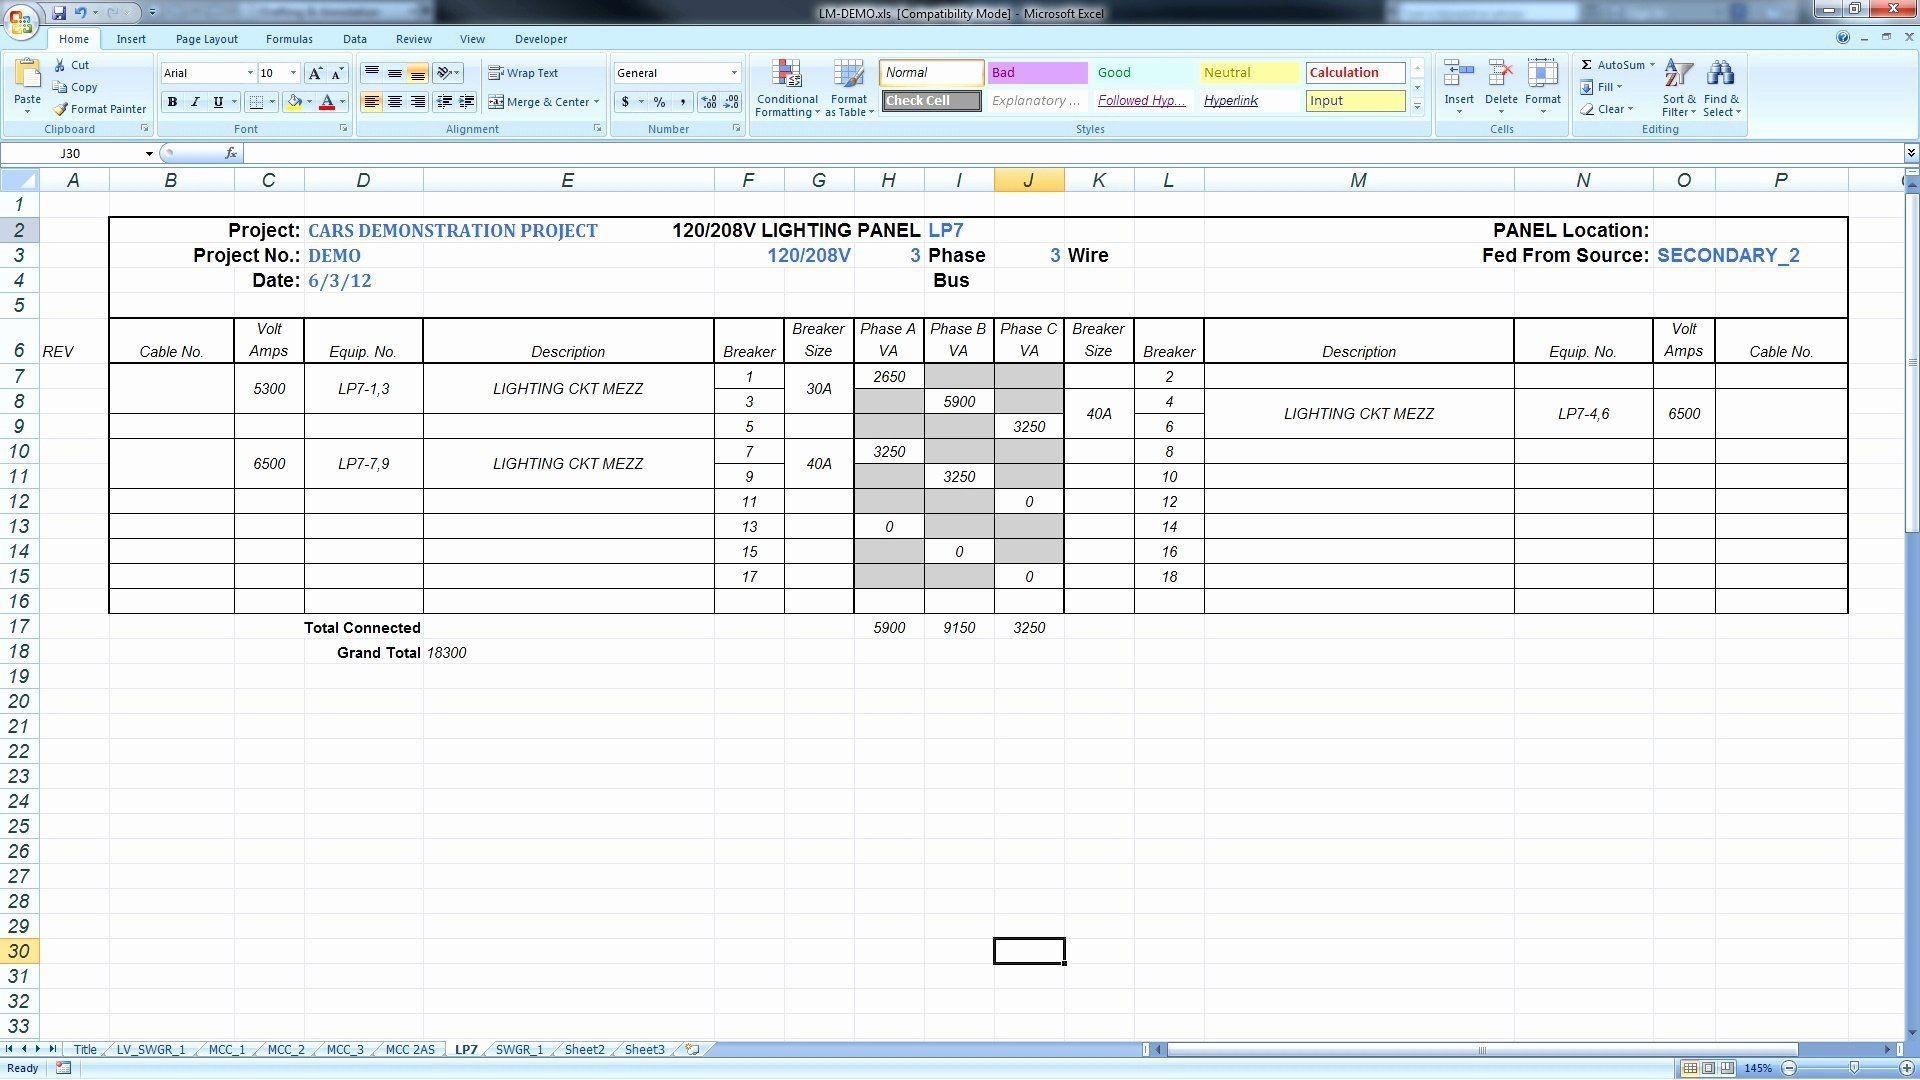 008 Excellent Electrical Panel Schedule Template Excel High Definition  Load Single Phase1920